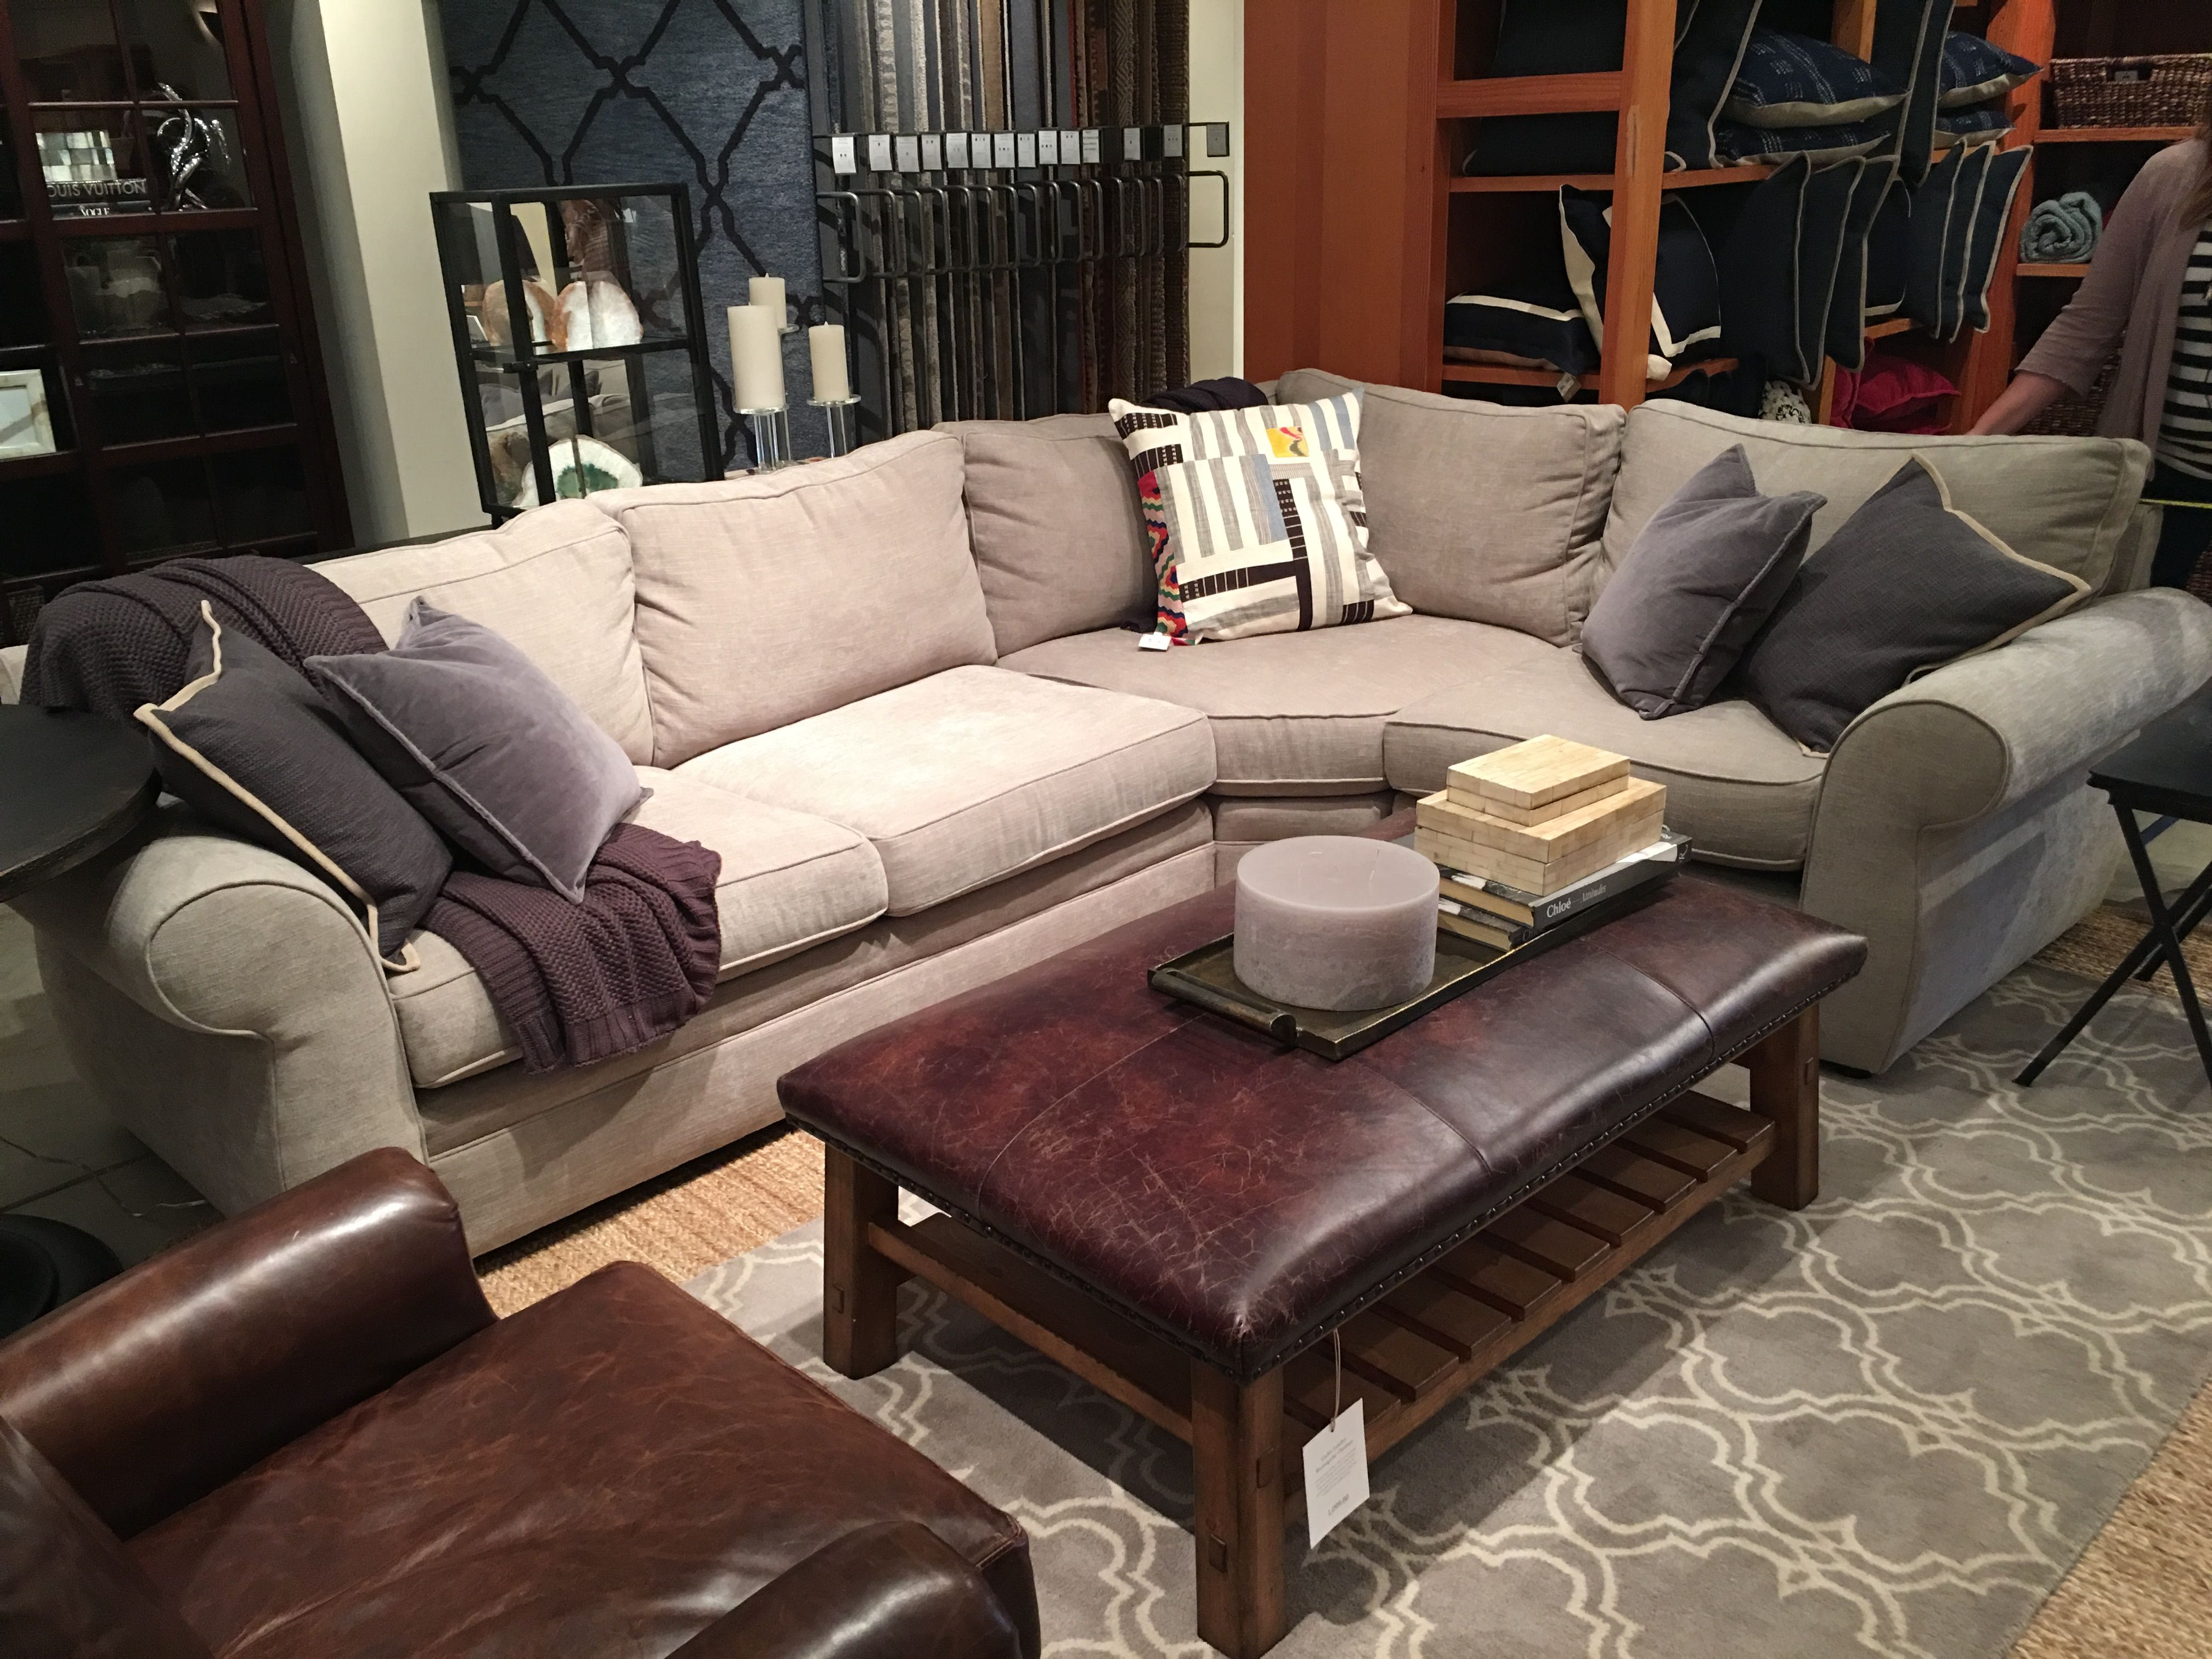 Comfortable Sofas For Family Room Part - 49: Family Room Furniture · Pottery Barn | Pearce Sectional In Silver Taupe  (perfect Sofa And So Comfortable)